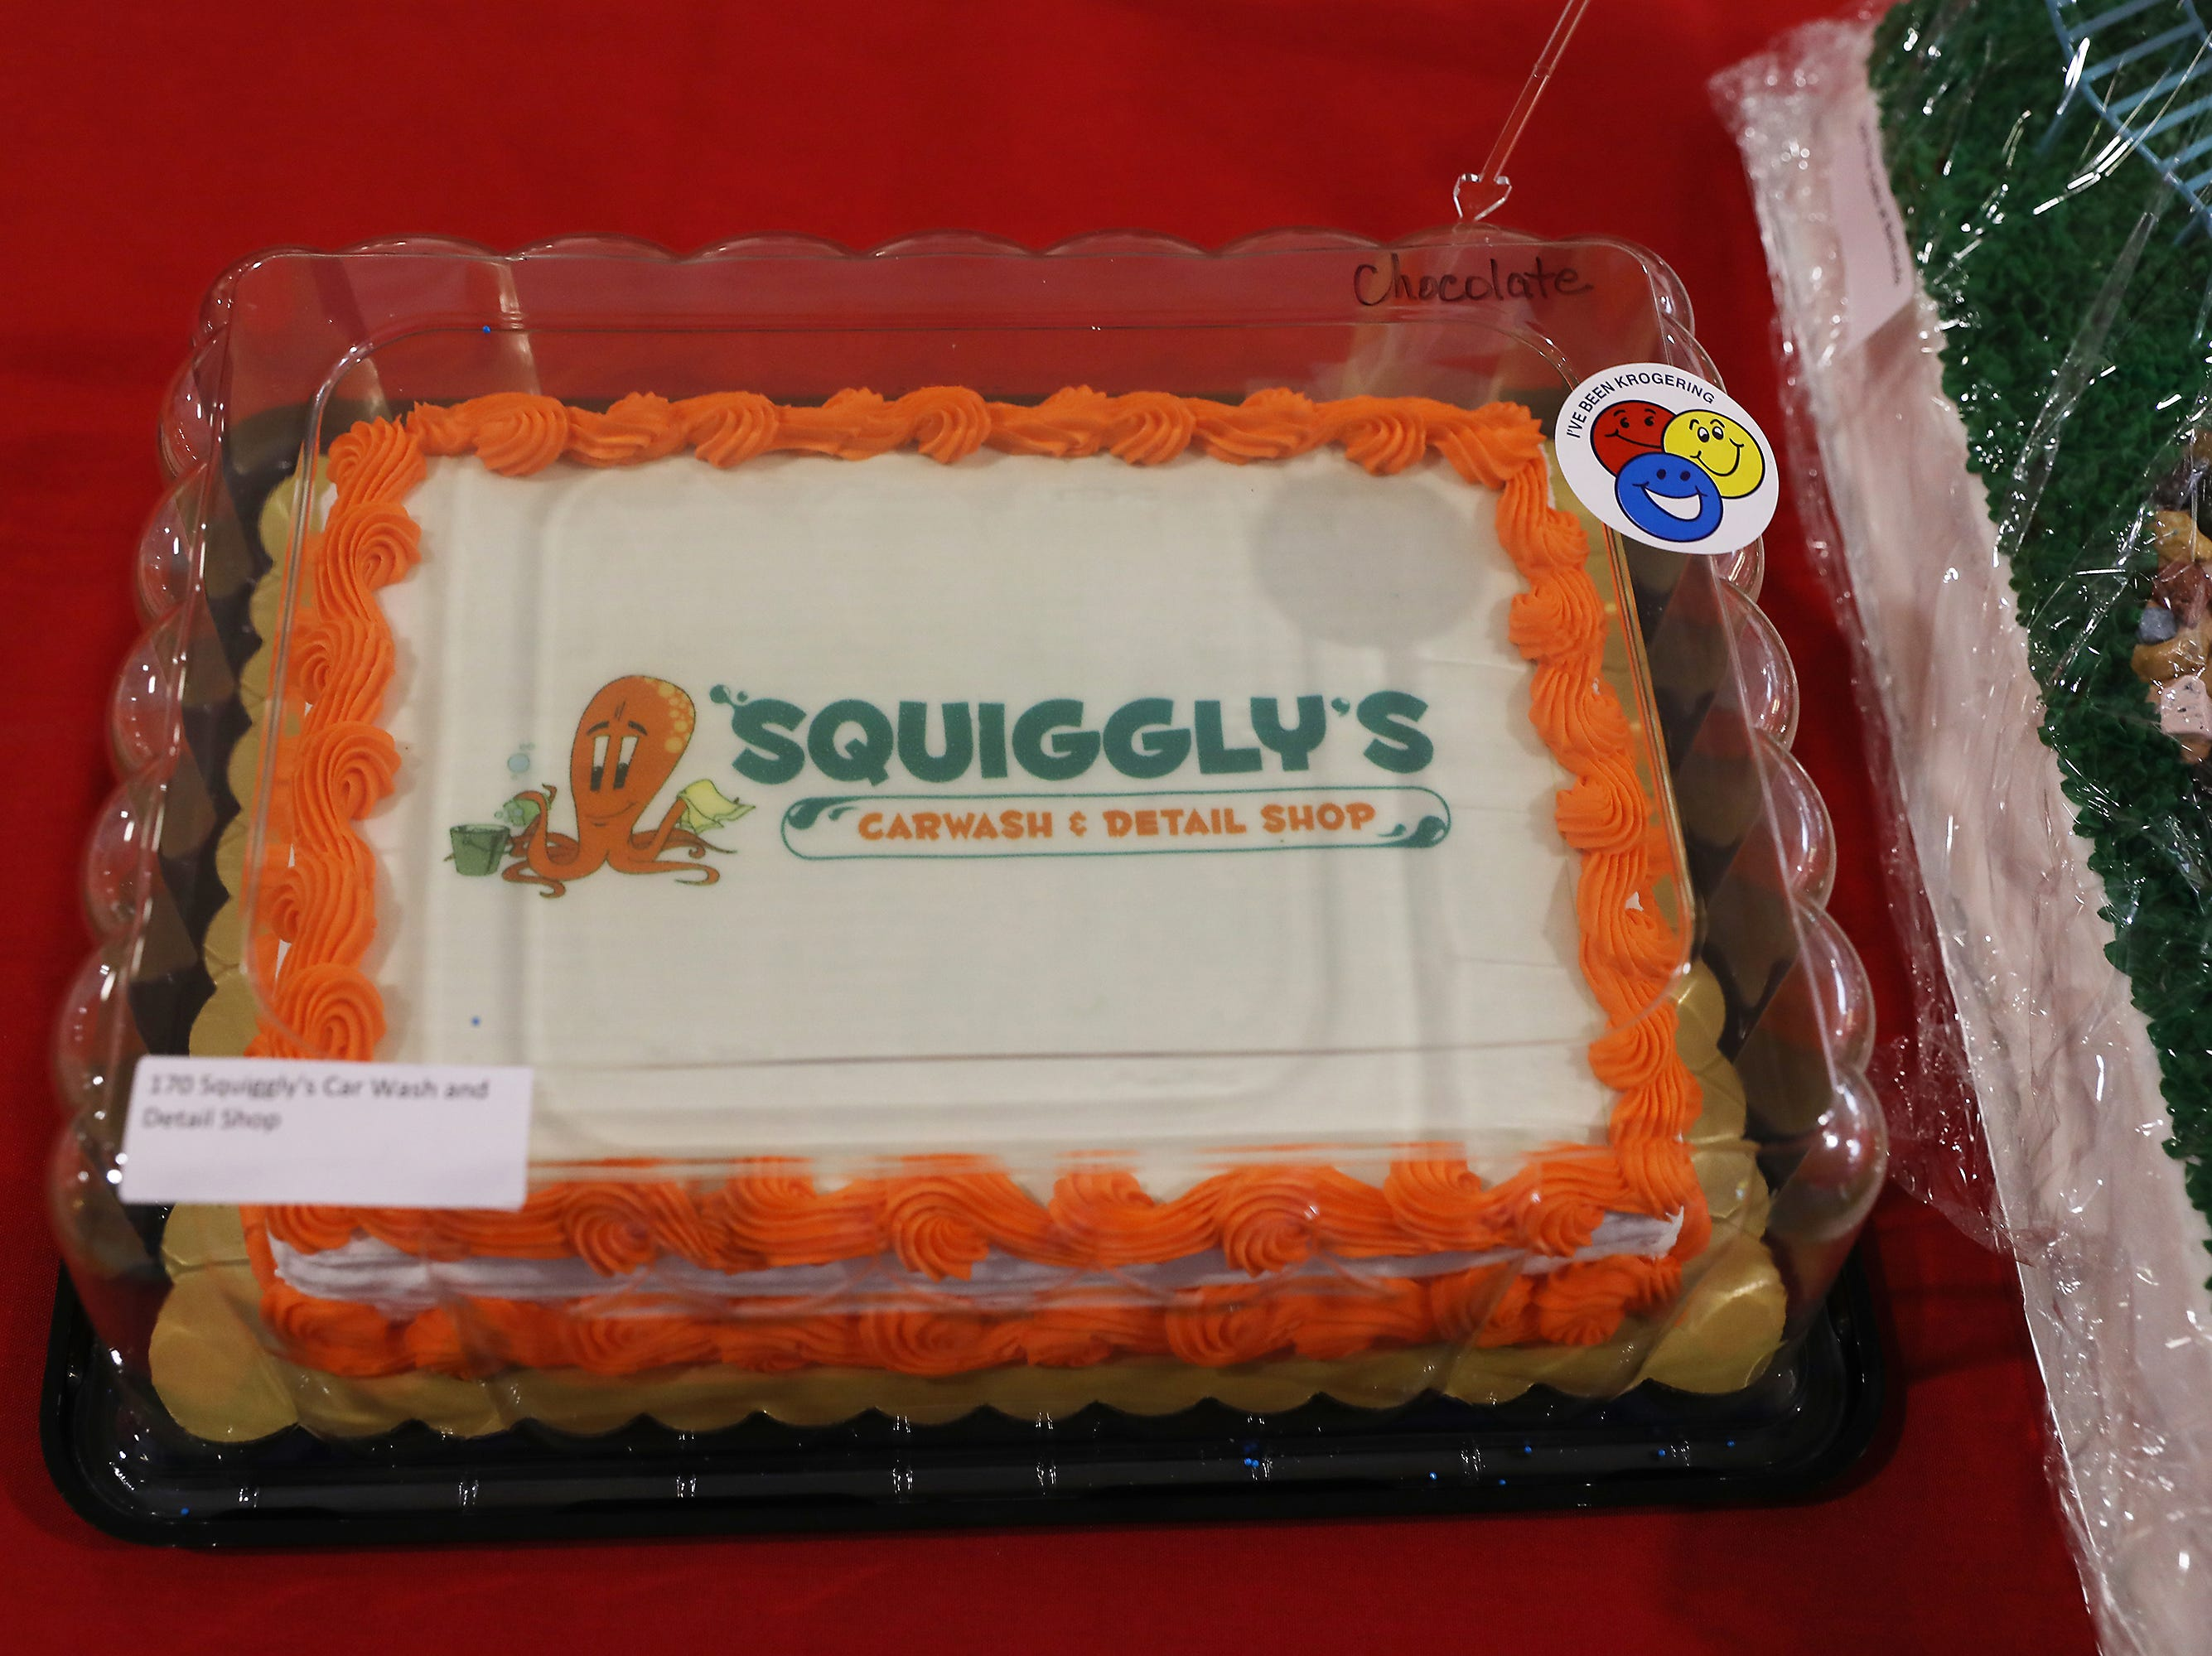 4:15 P.M. Thursday cake 170 Squiggly's Car Wash - Complete detail; $215